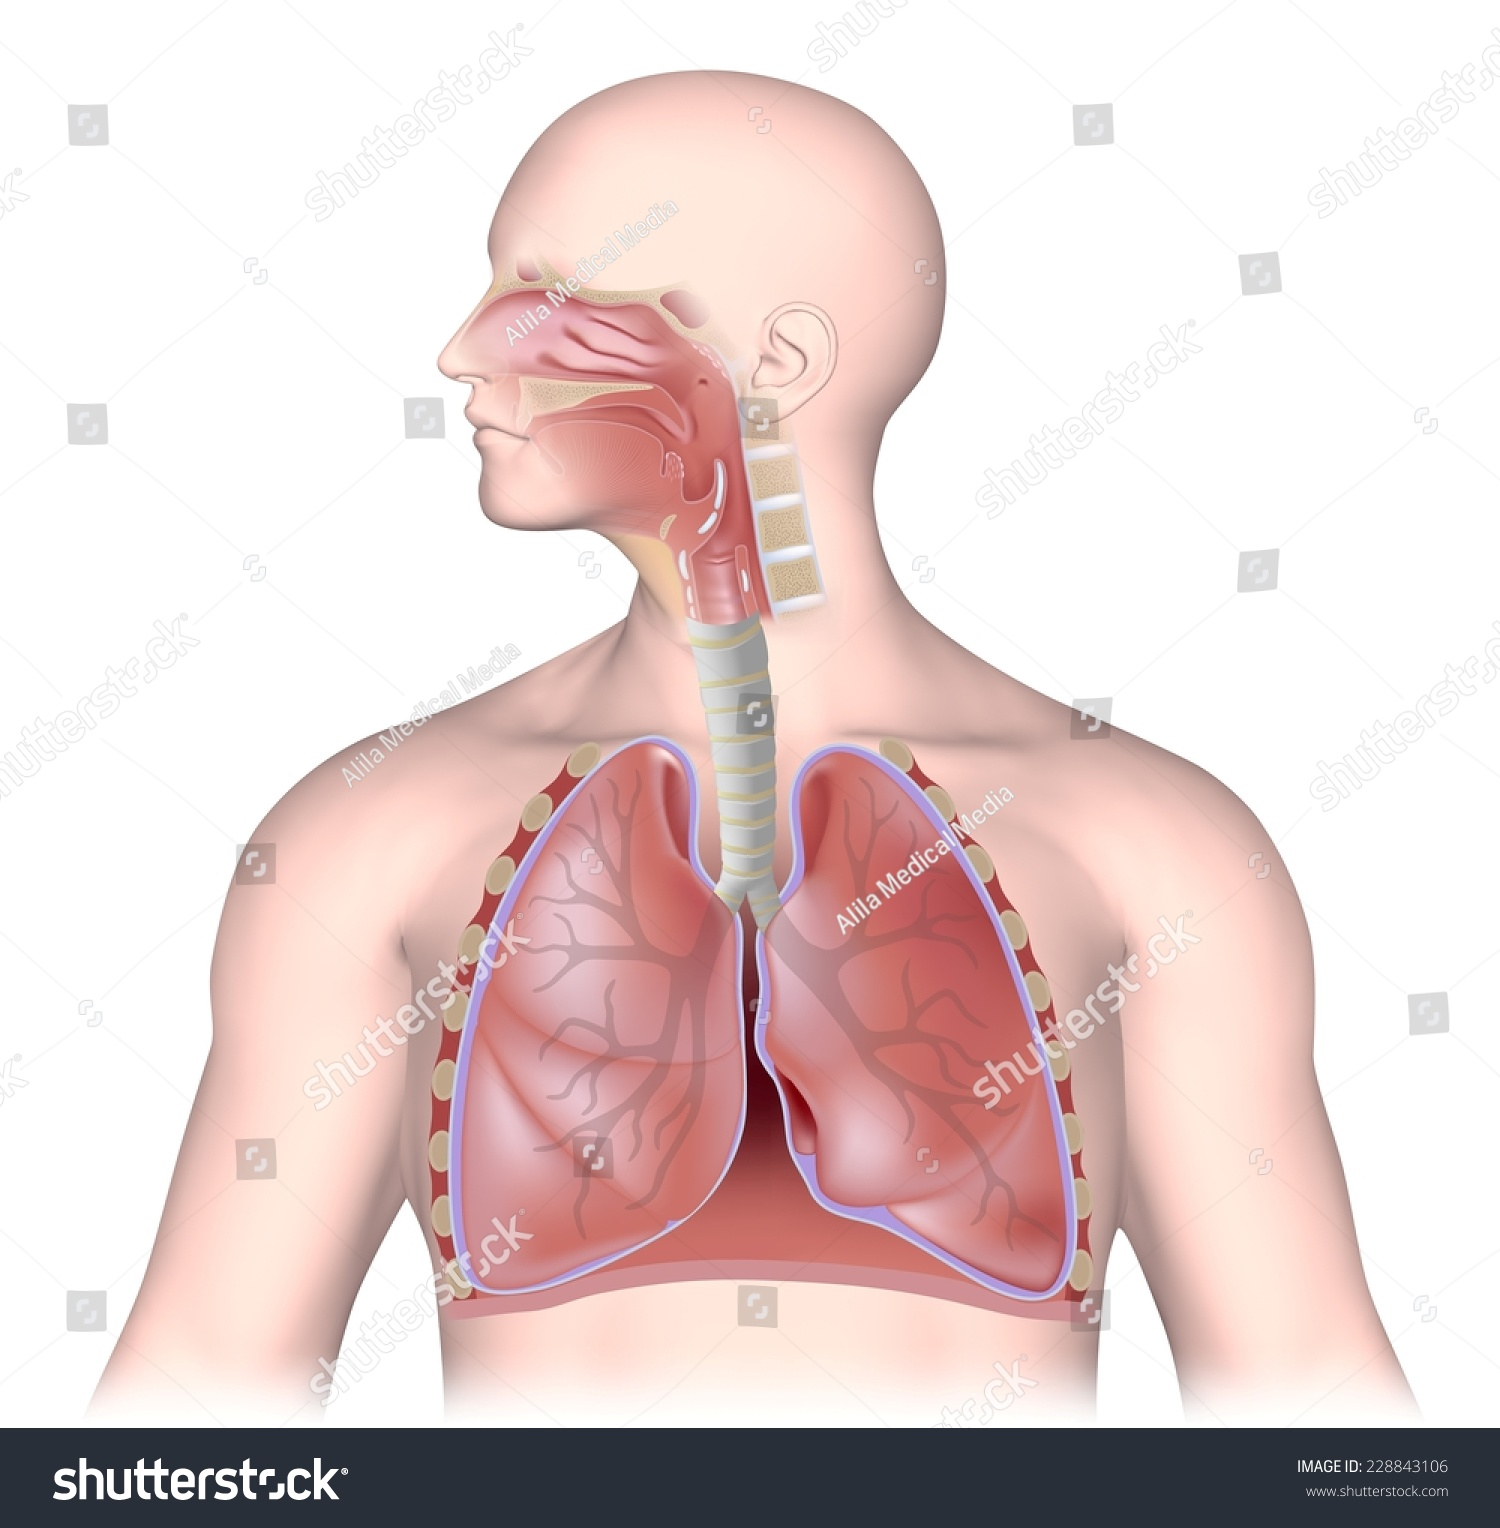 respiratory system unlabeled stock illustration 228843106 - shutterstock